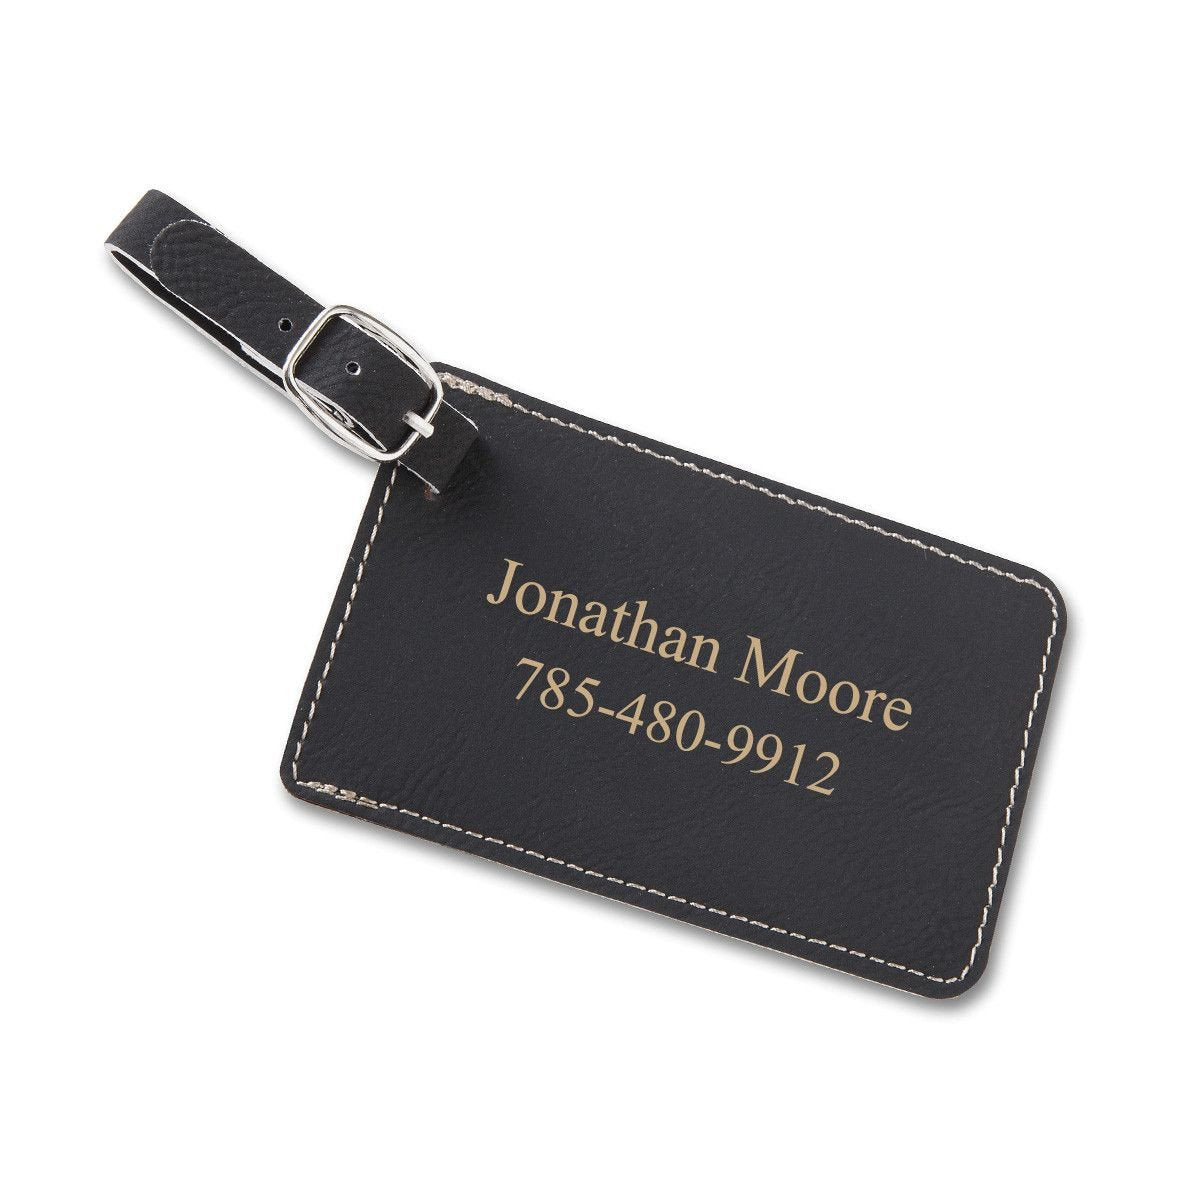 Personalized Vegan Leather Luggage Tags